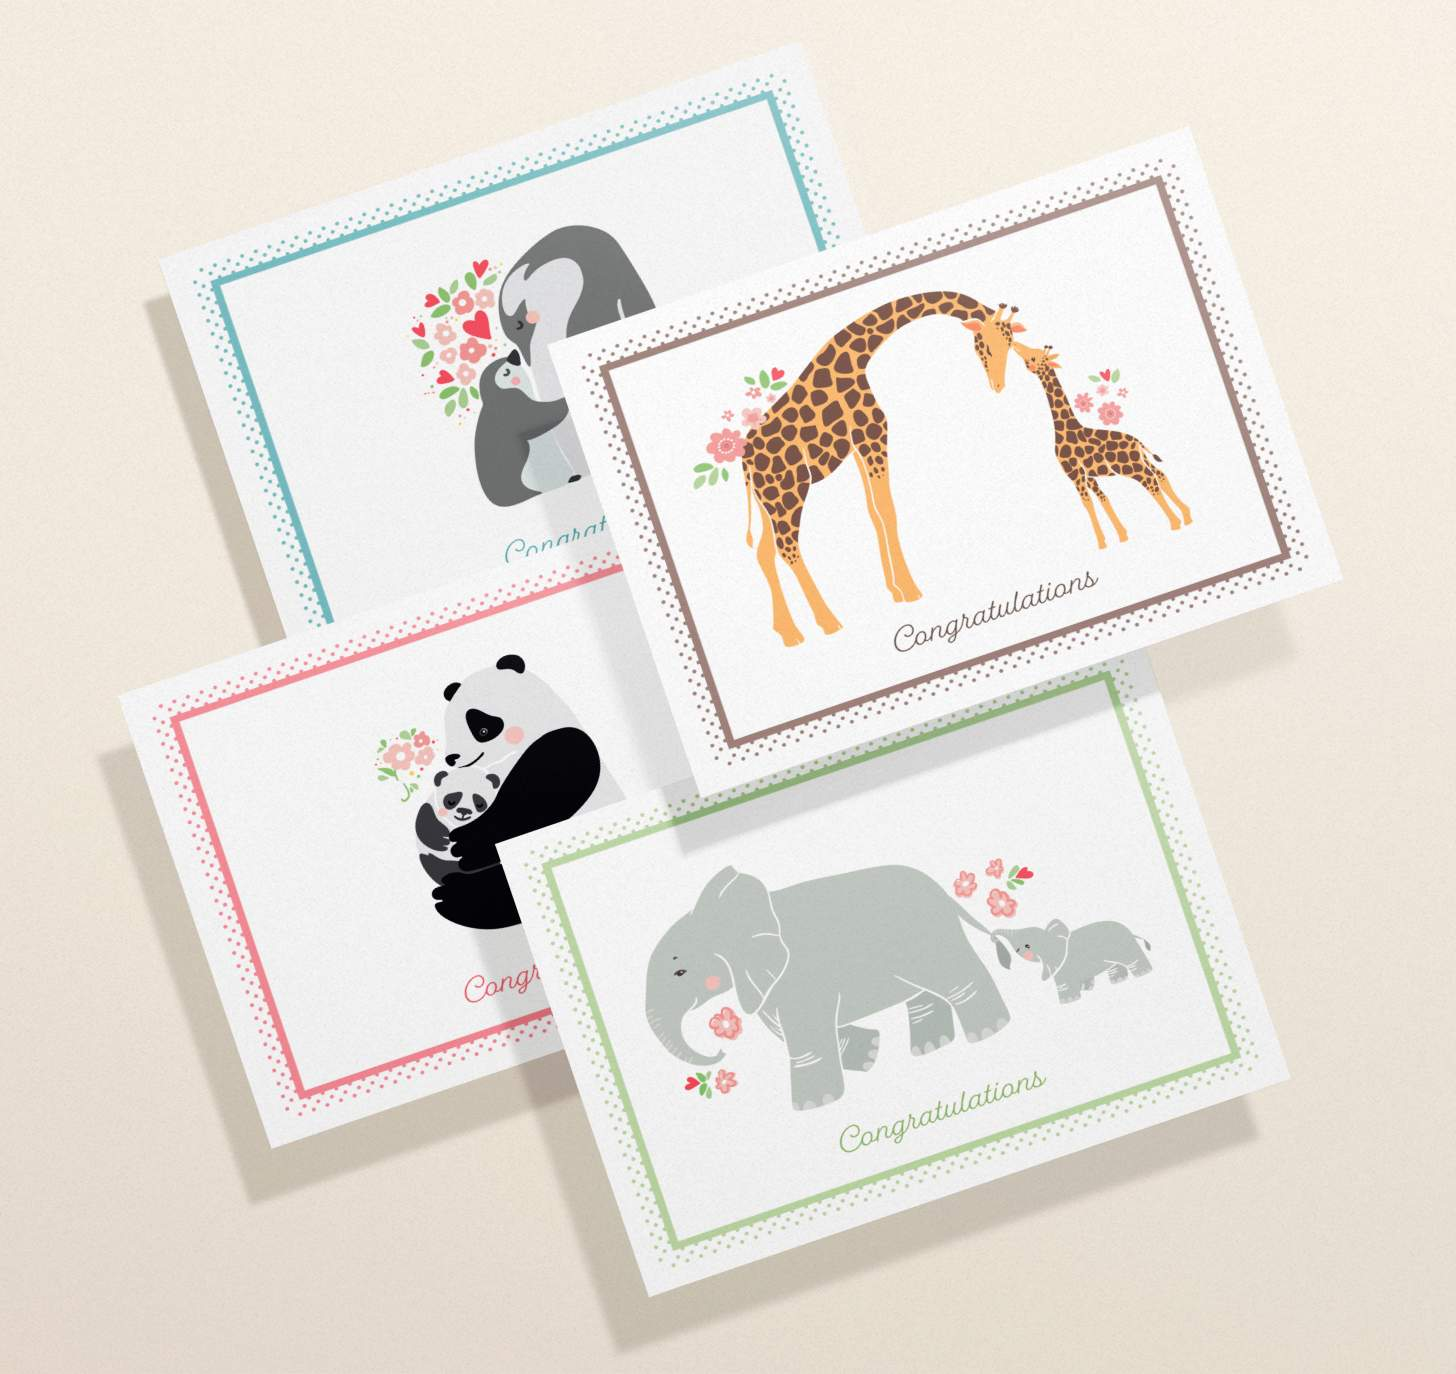 Four overlapping cards with mother and baby elephant, giraffe, panda, and penguin designs